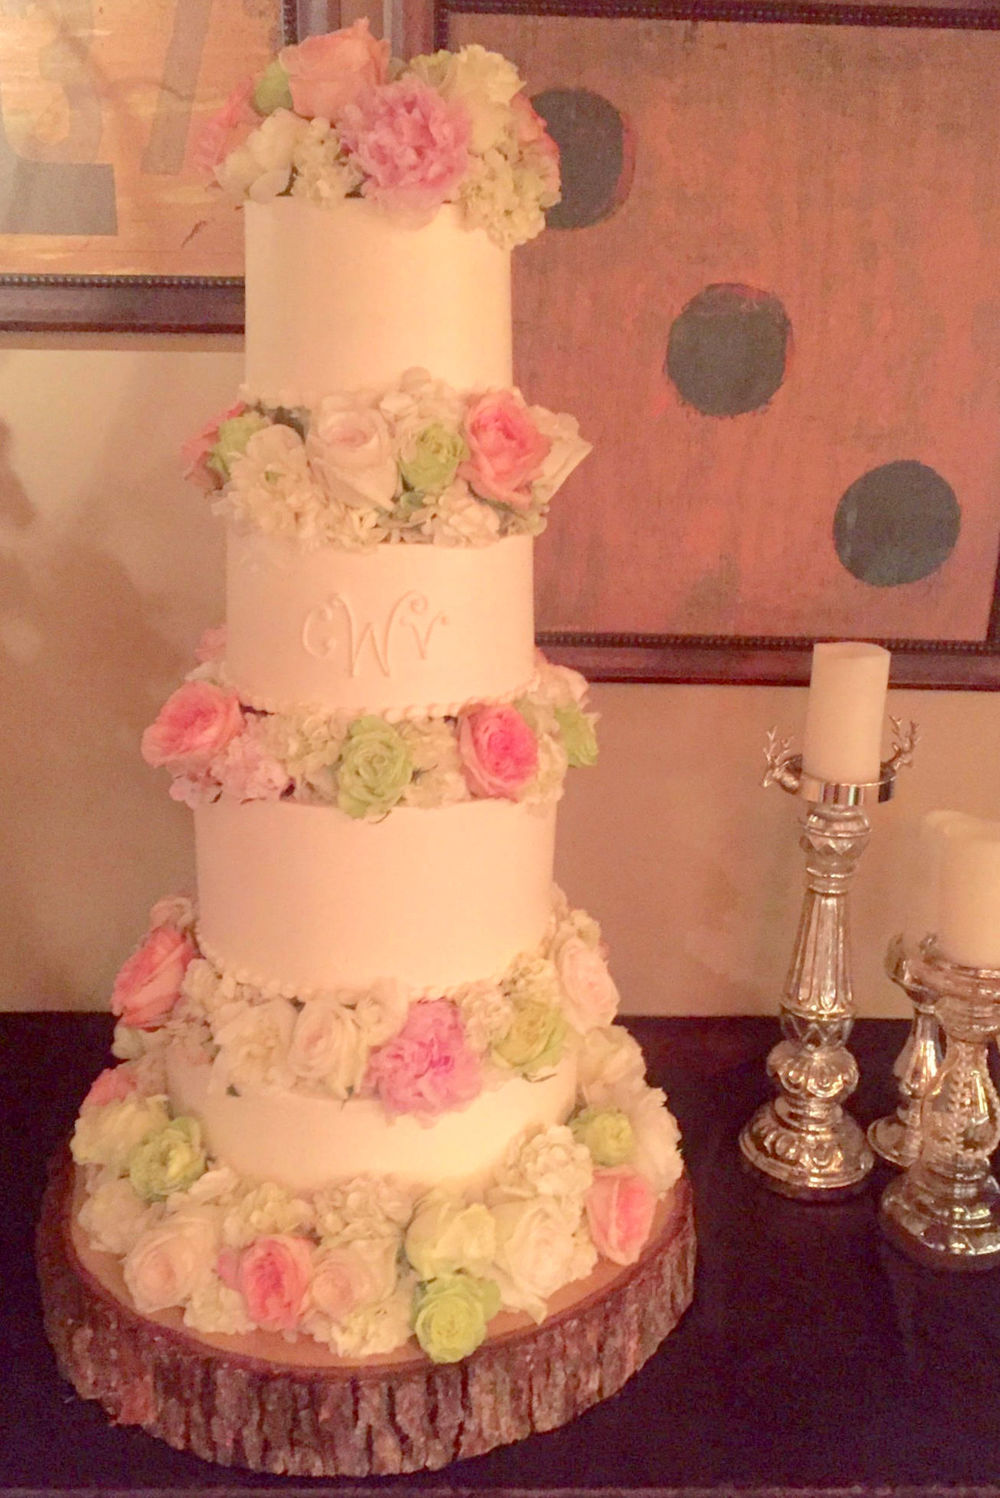 wedding cake  with flowers and tree stump.jpg